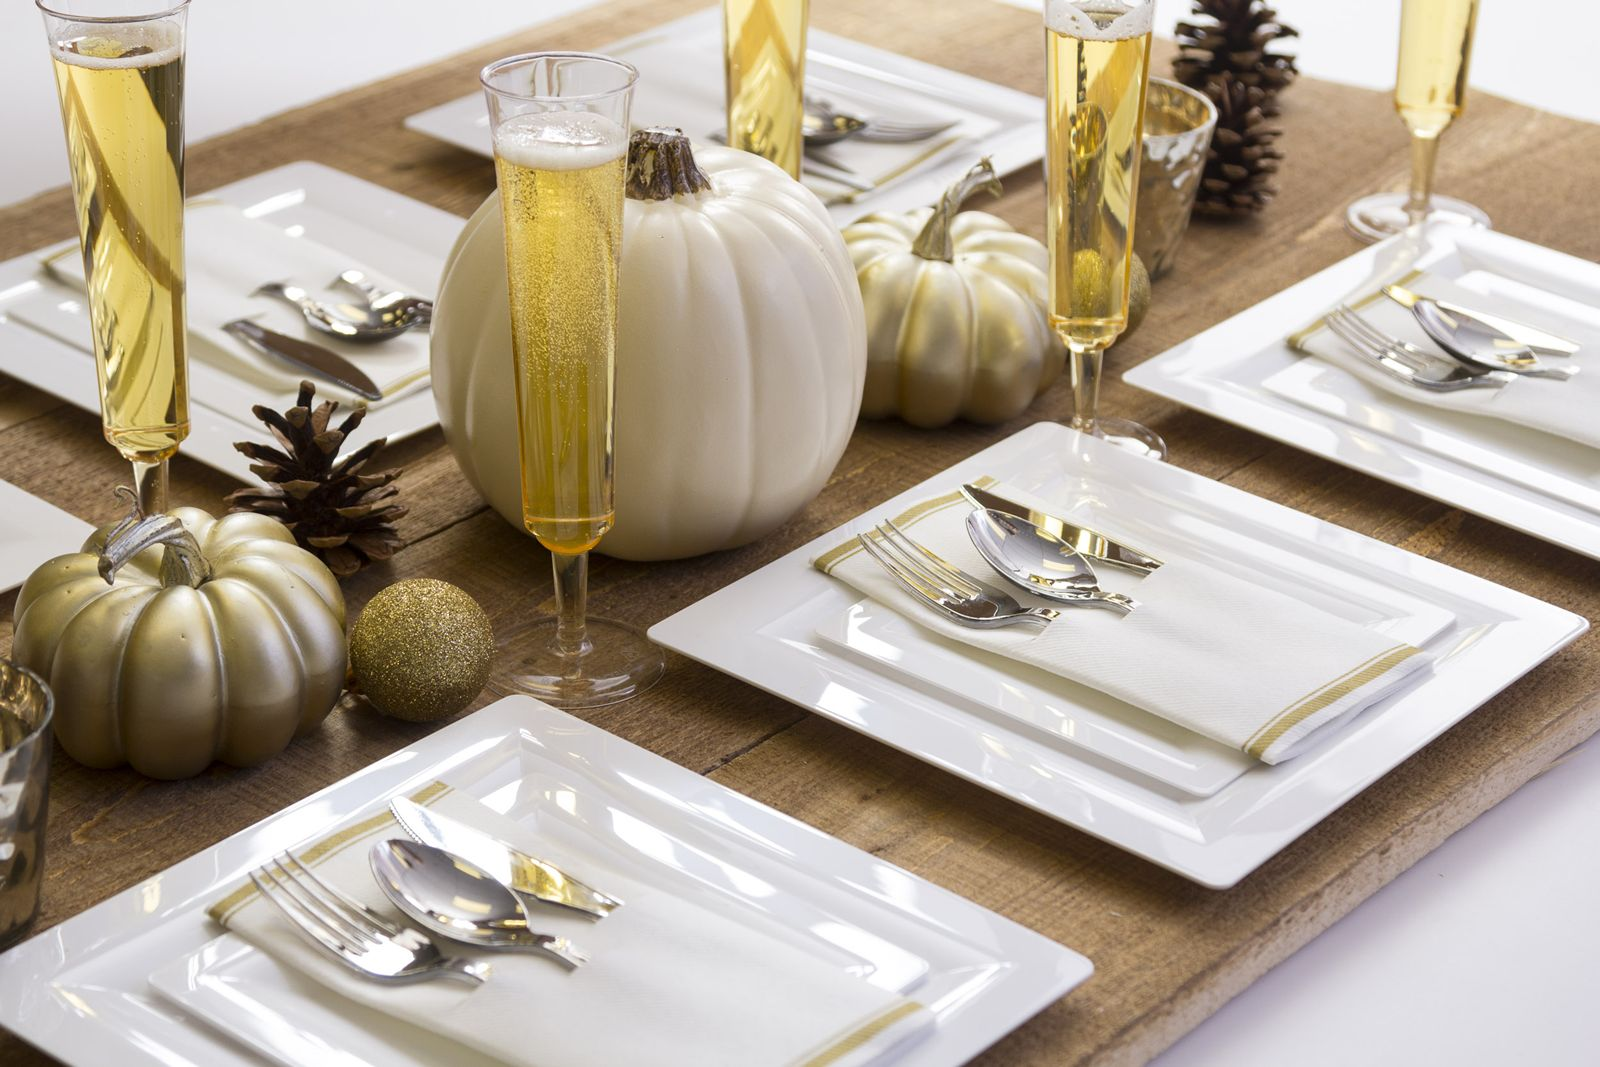 Novolex Offers Elegant Solutions for Safer Holiday Dining